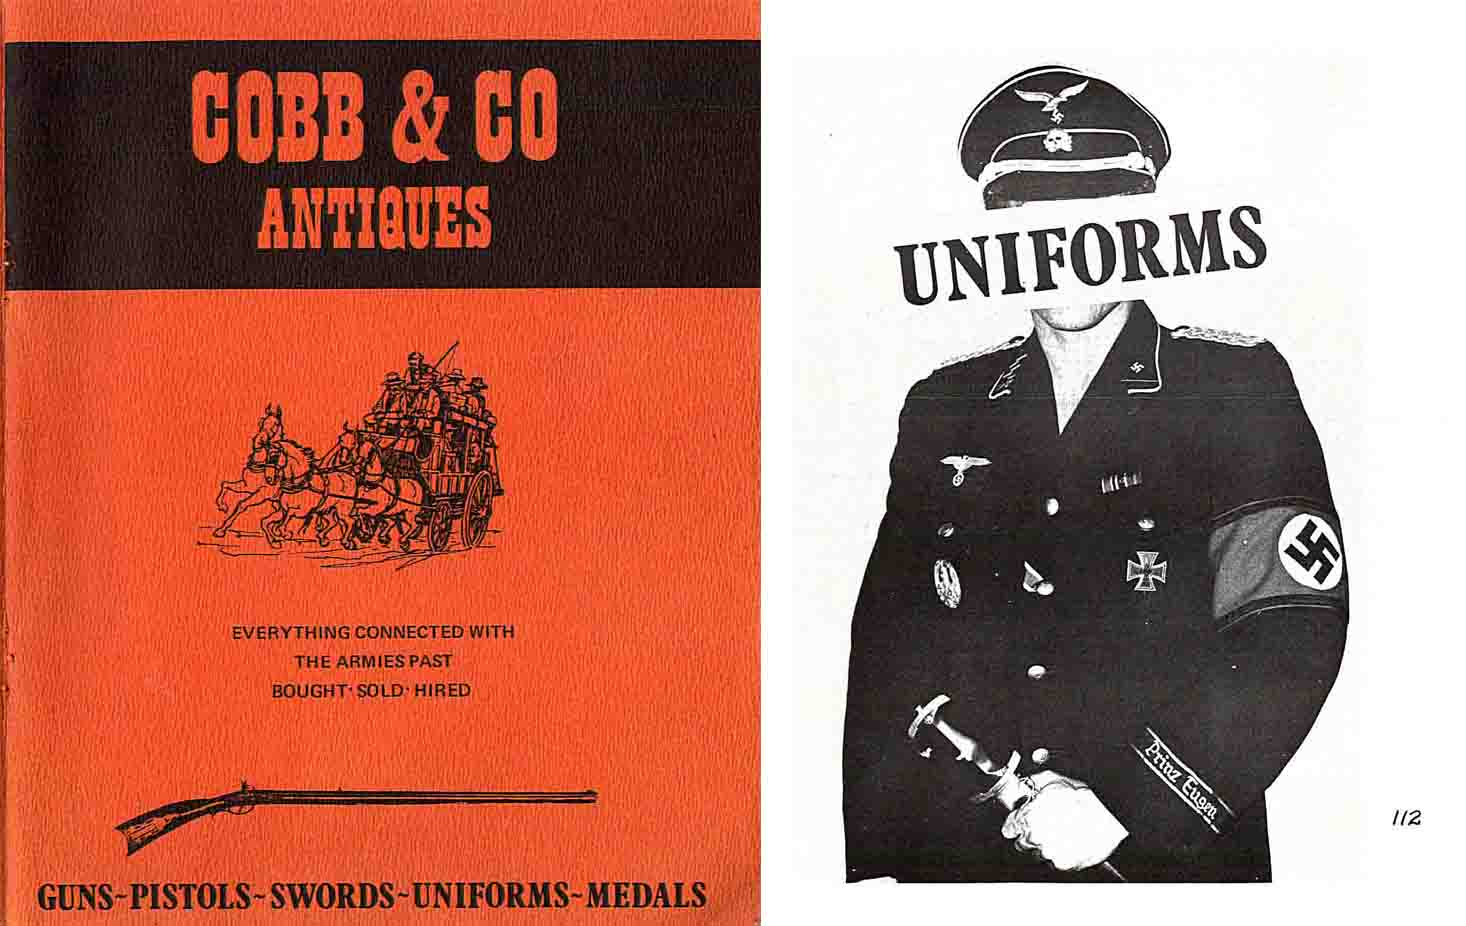 Cobb & Co. c1970 Antique Gun Catalog - Australia